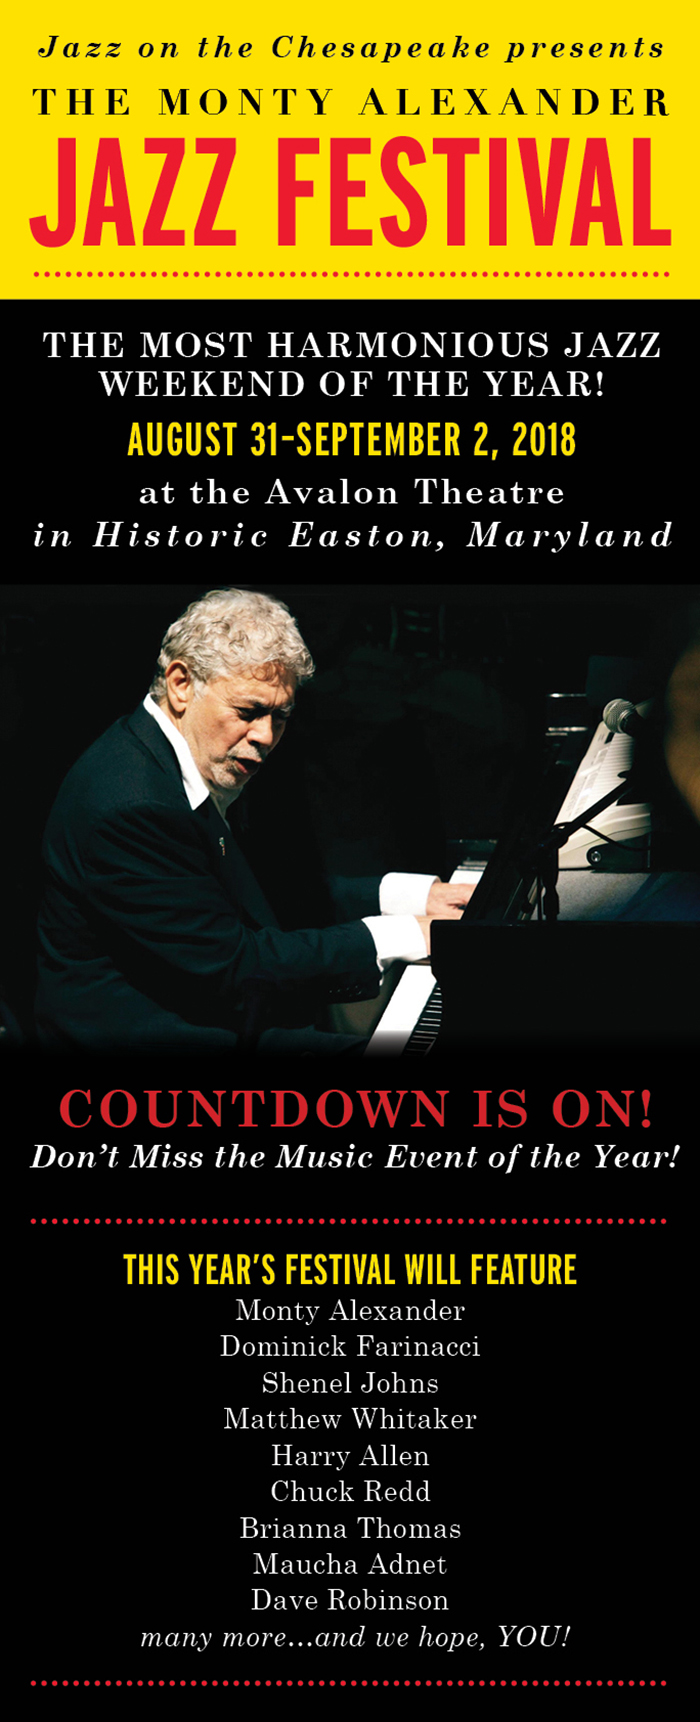 The Countdown is on for the Monty Alexander Jazz Festival!